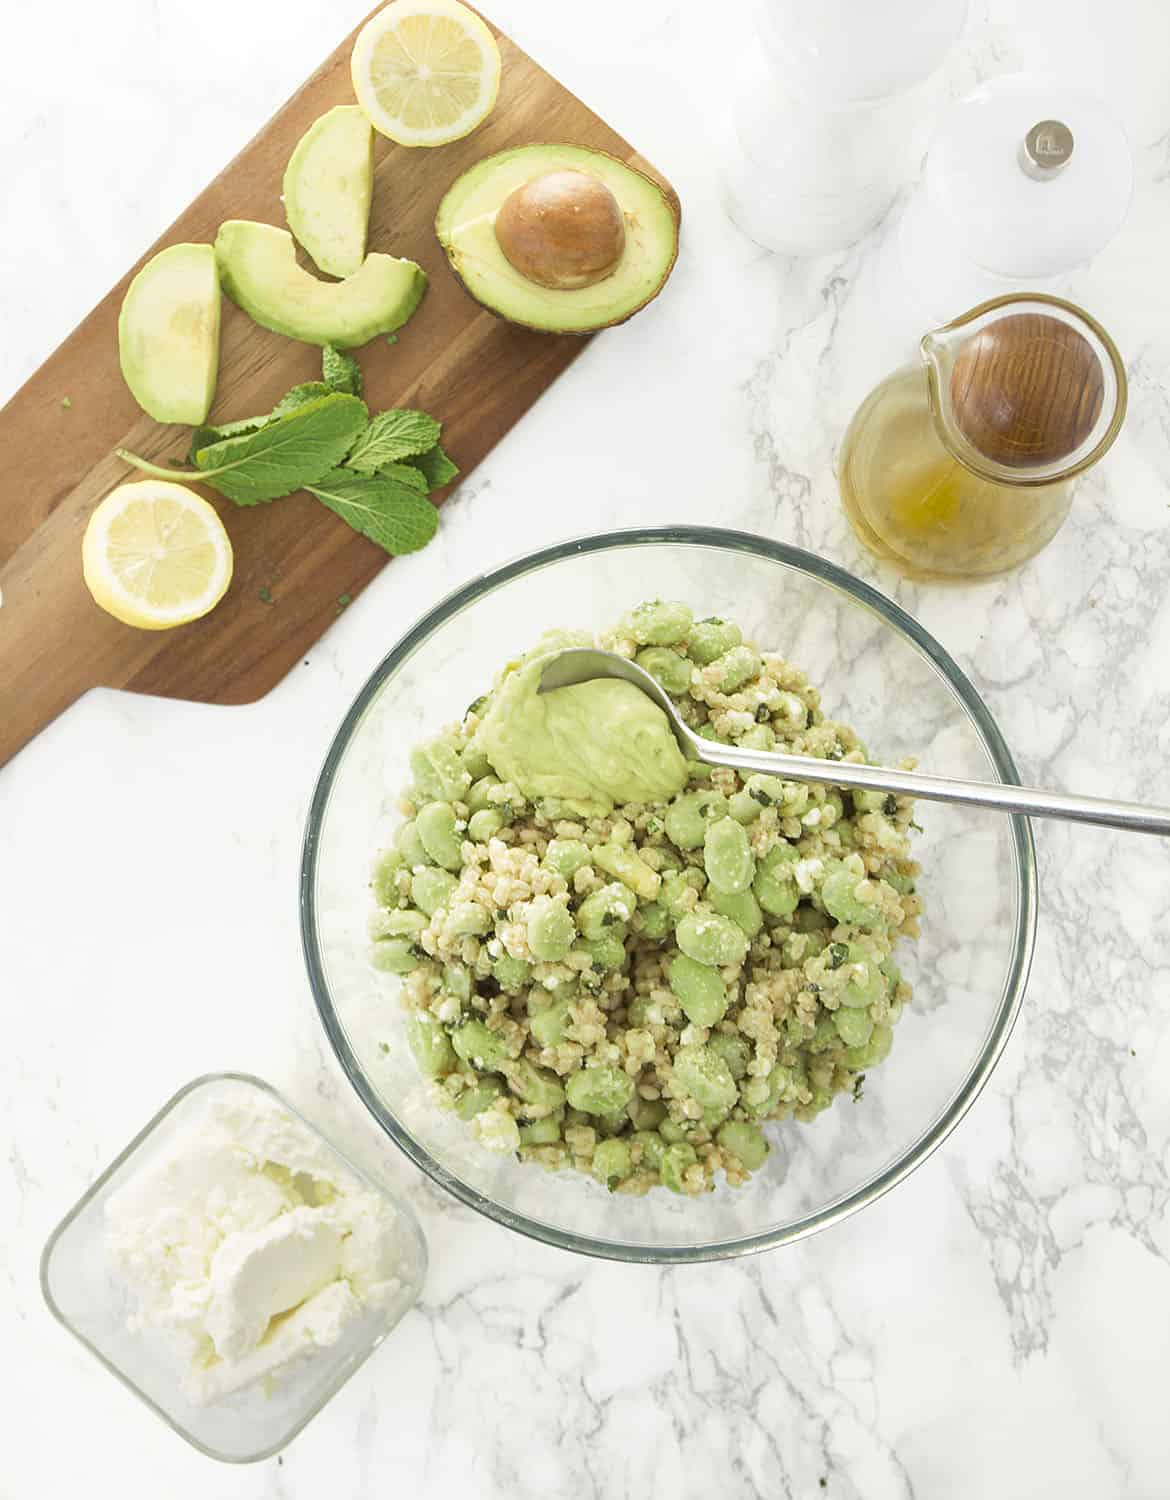 A refreshing and zesty fava bean salad packed with grains, feta and a creamy avocado dressing.